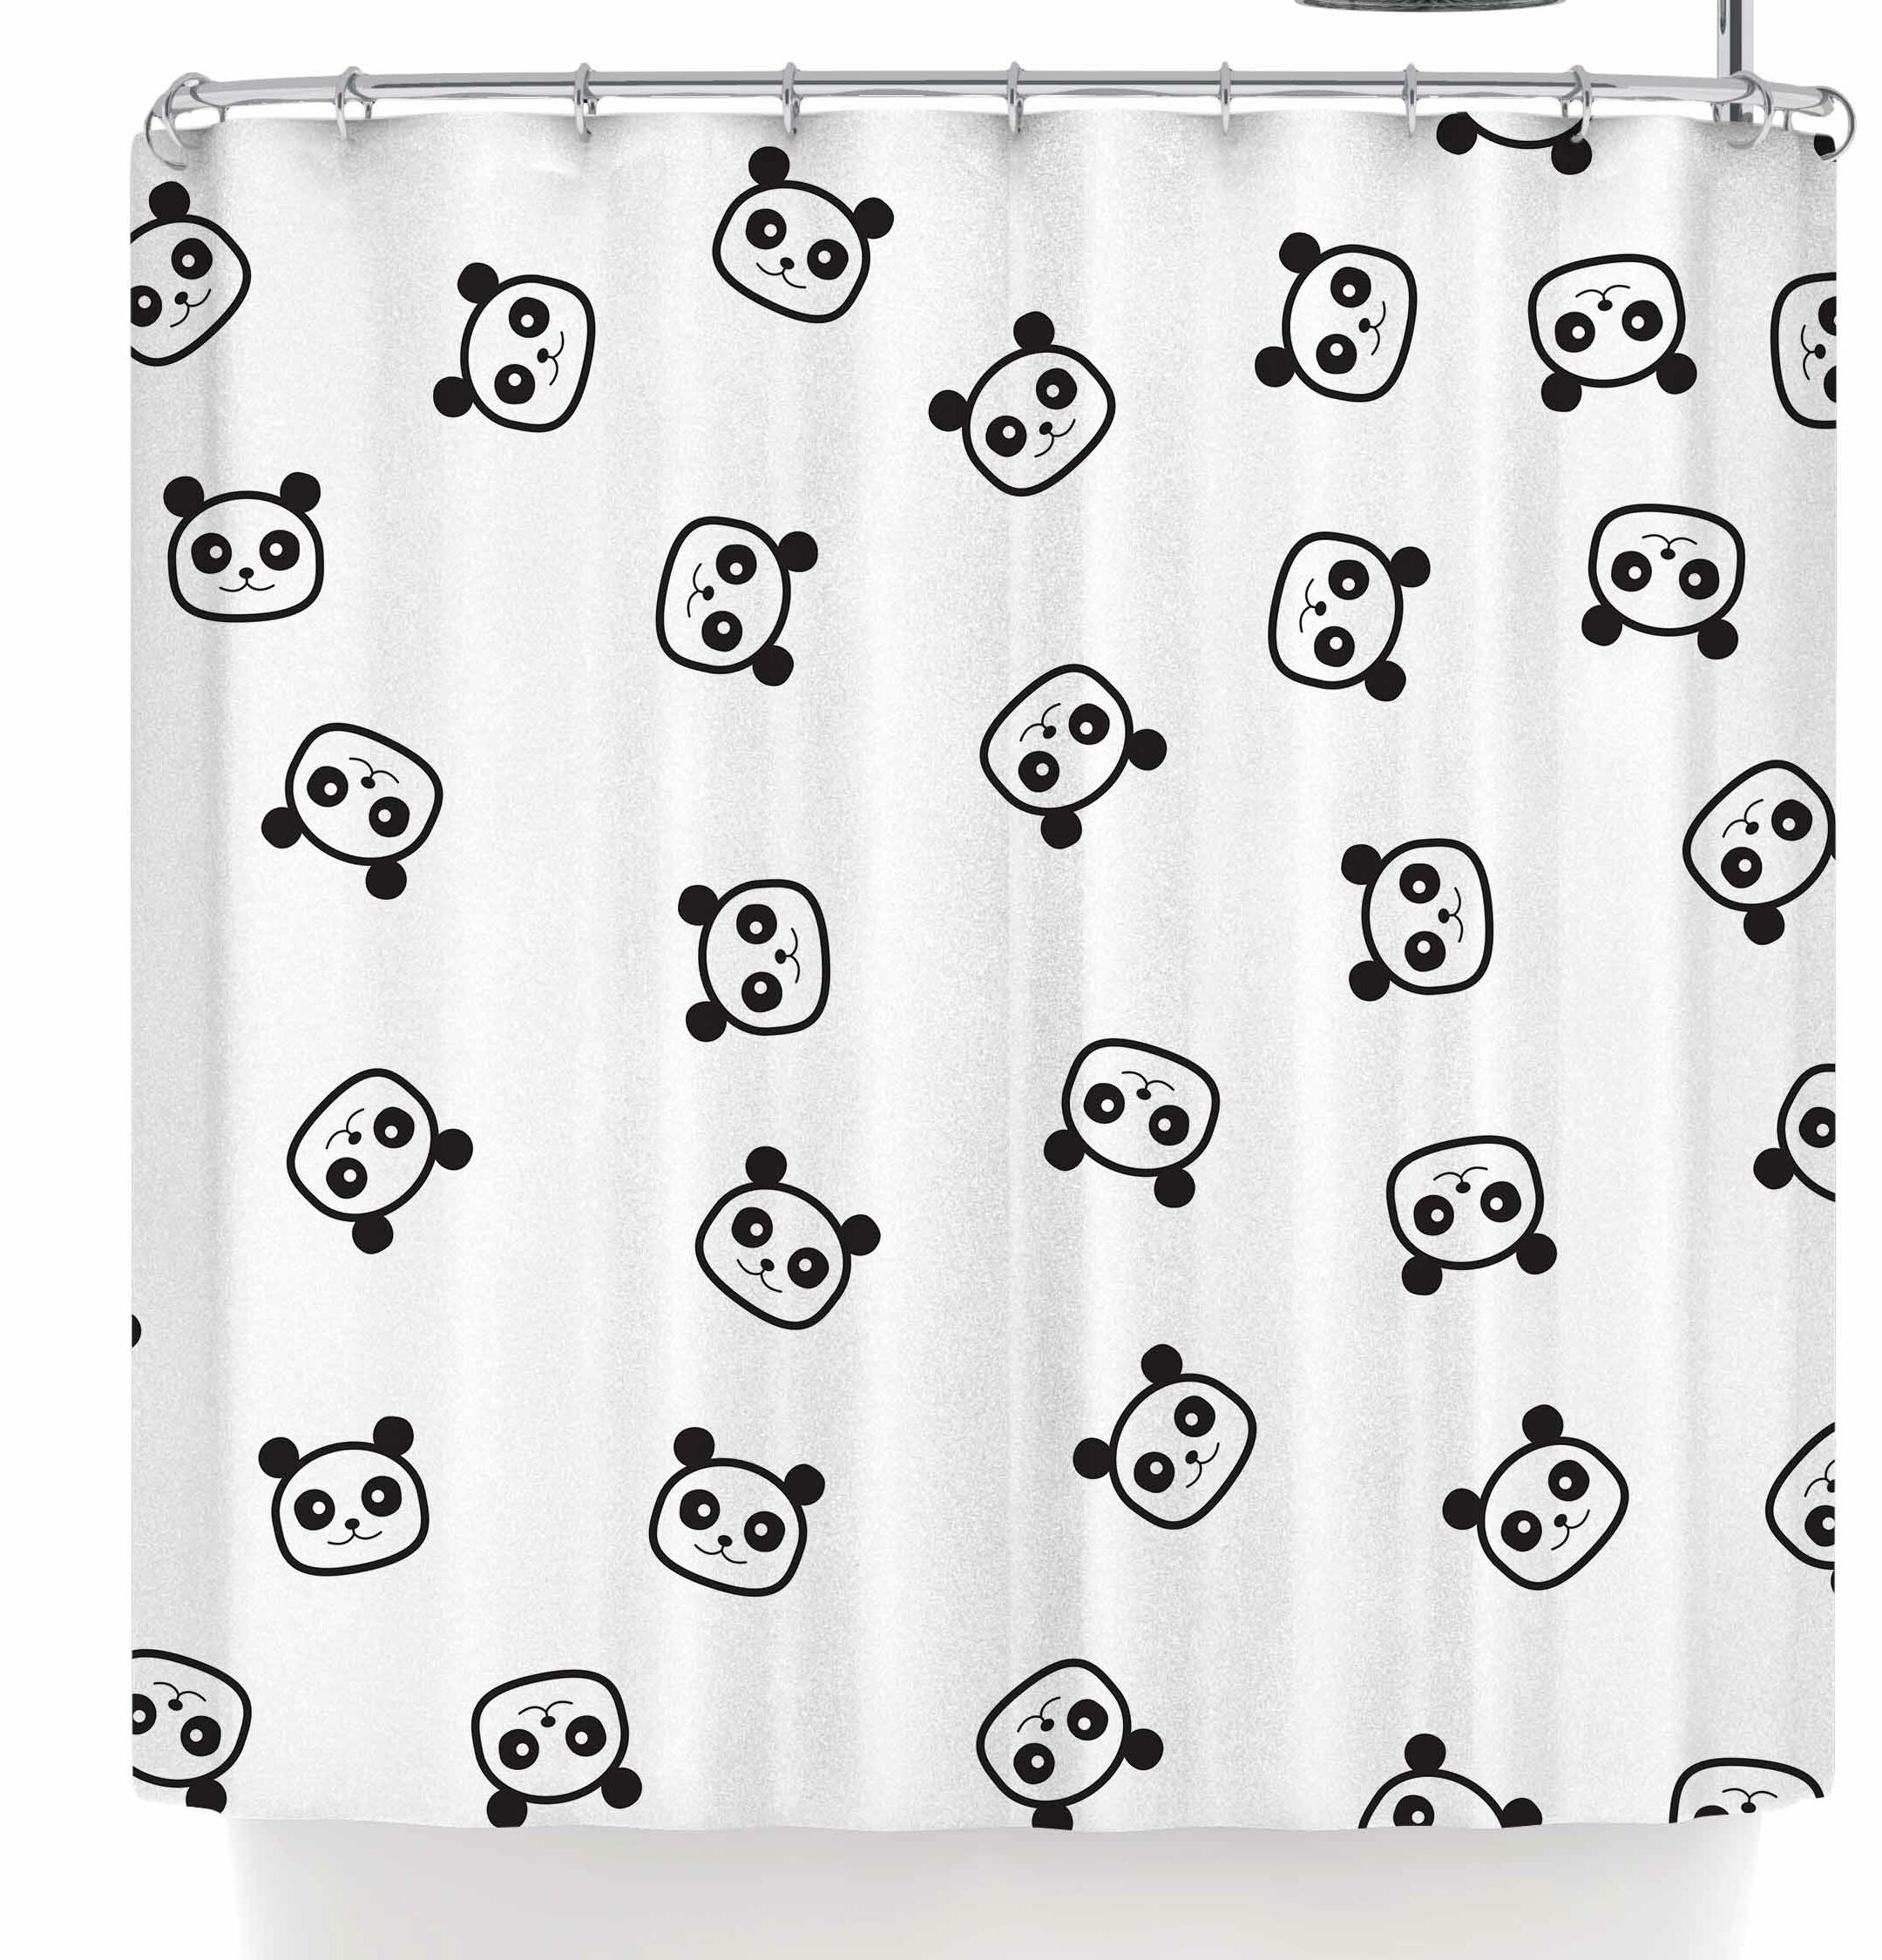 East Urban Home Tobe Fonseca Pandamonio Panda Shower Curtain